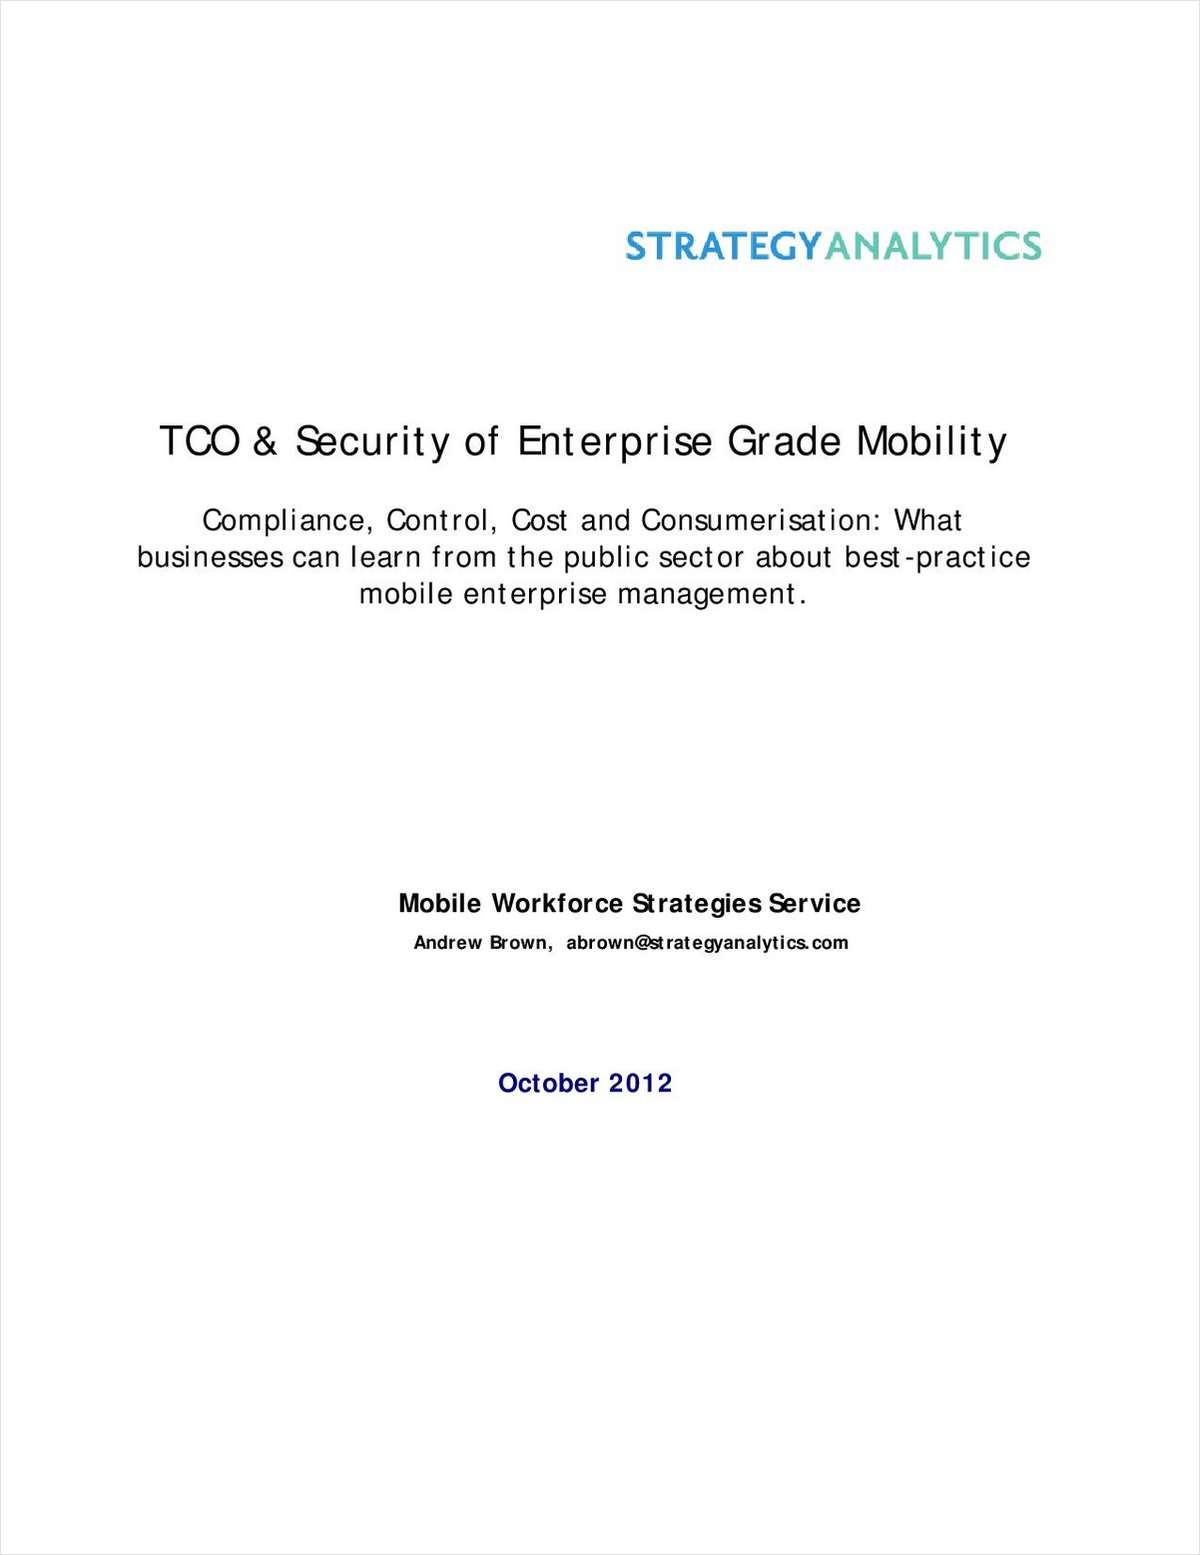 Research Report: How the Major Mobility Platforms Compare in TCO and Security